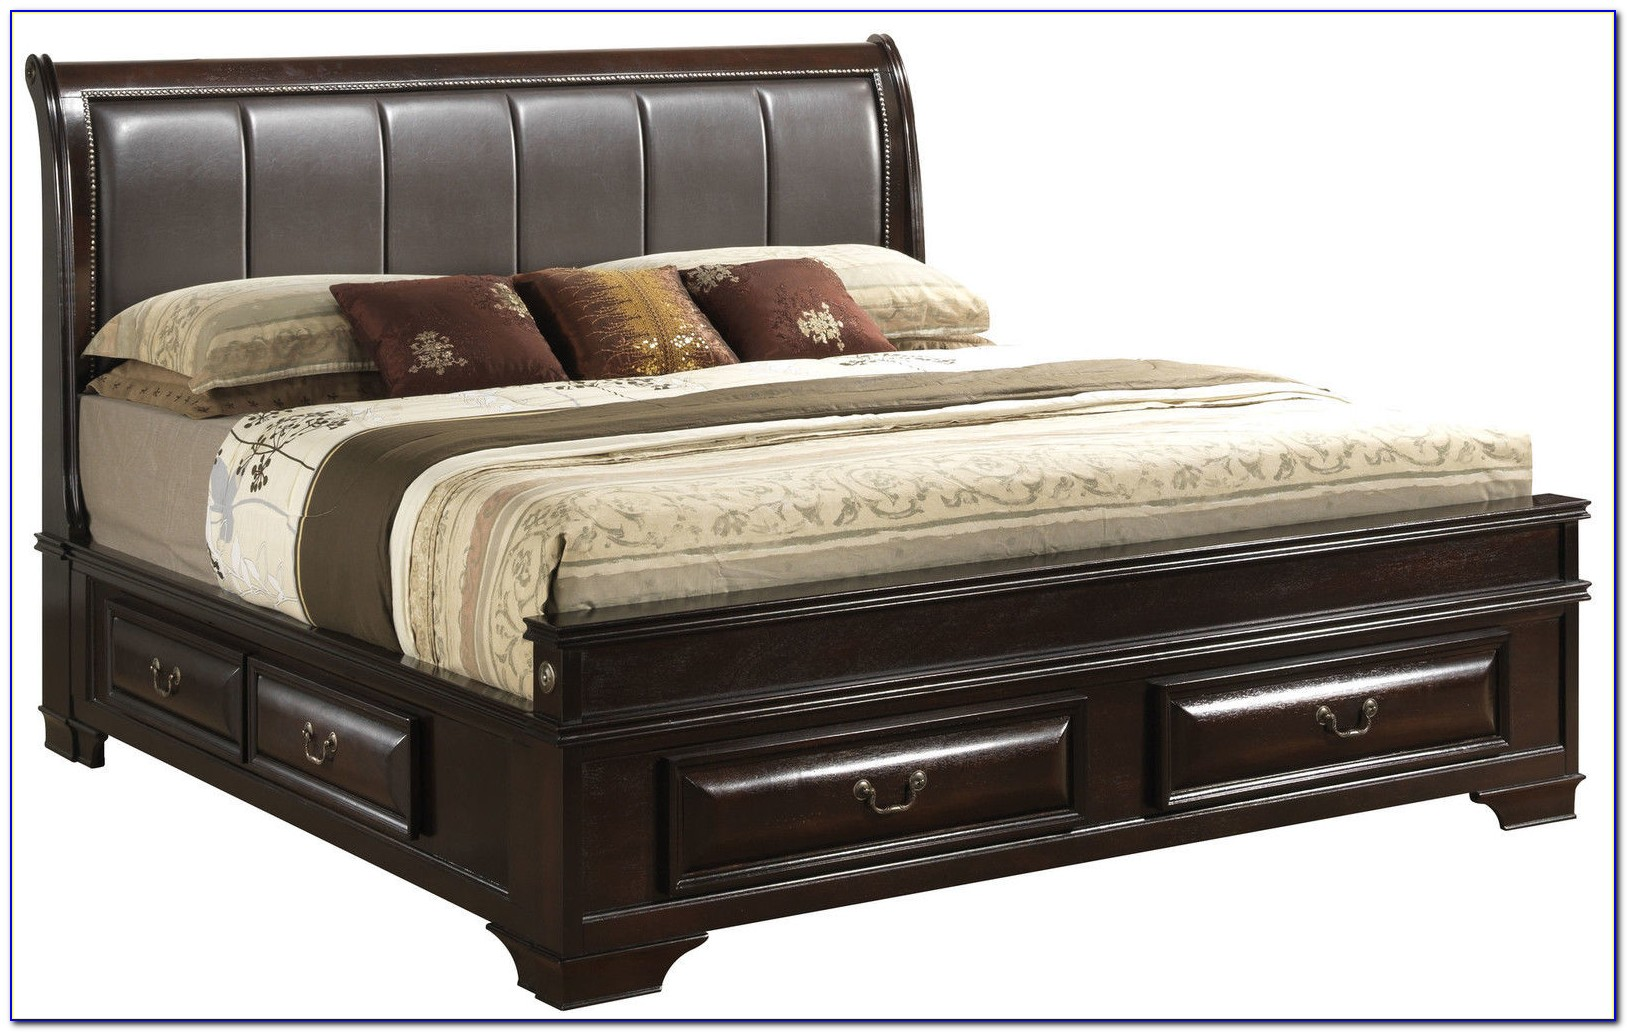 Wood Bed Frame With Upholstered Headboard